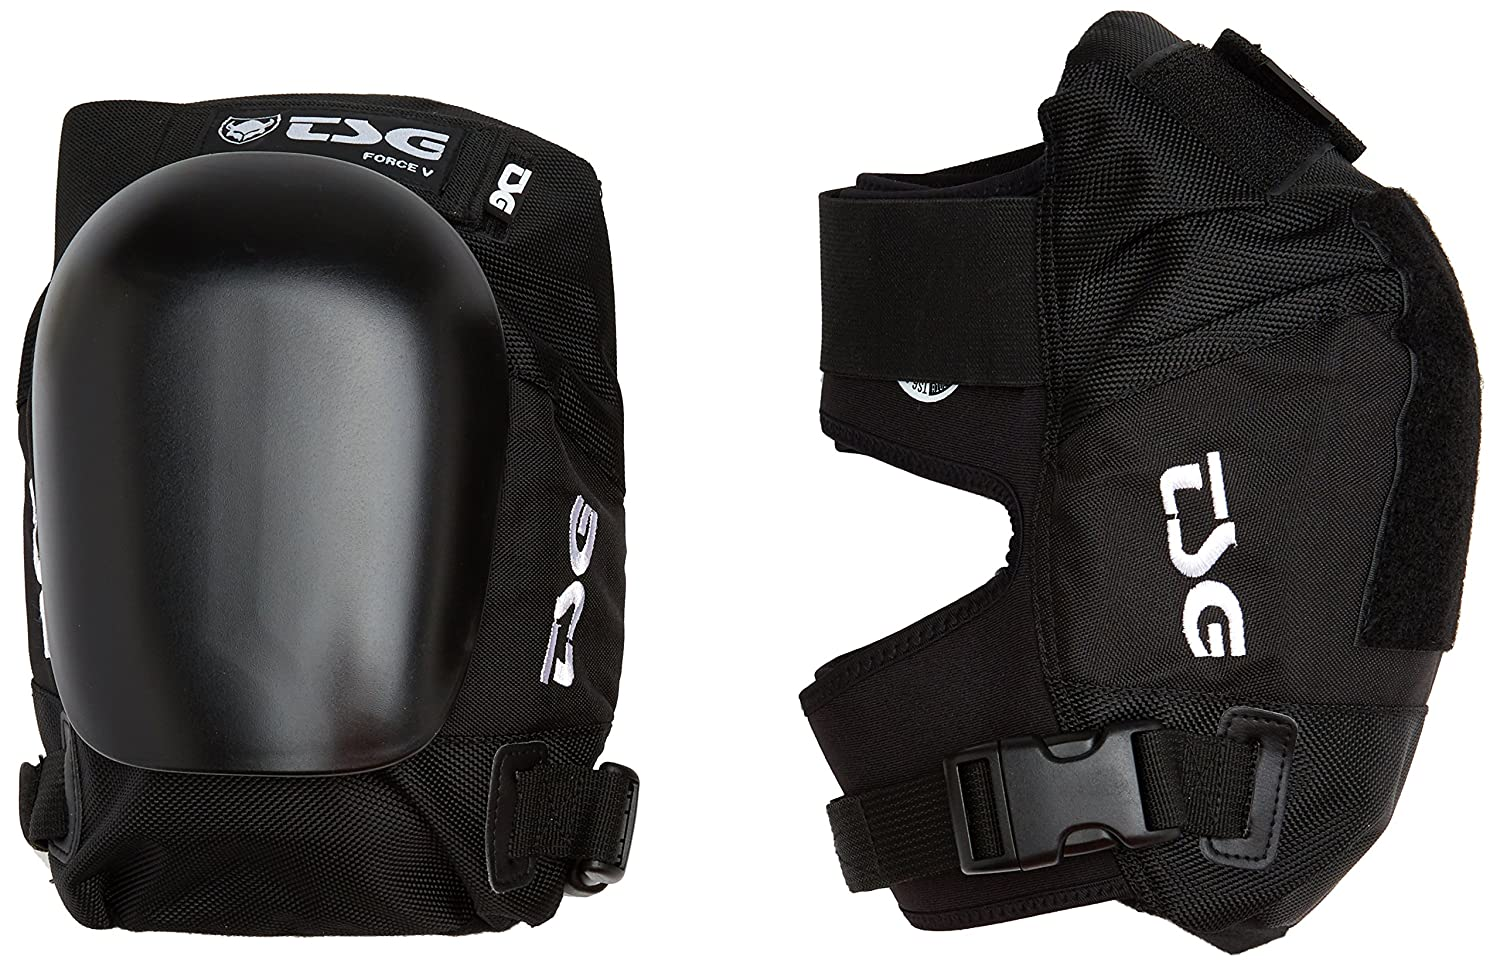 TSG Kneepad Force V Pads for Skateboard